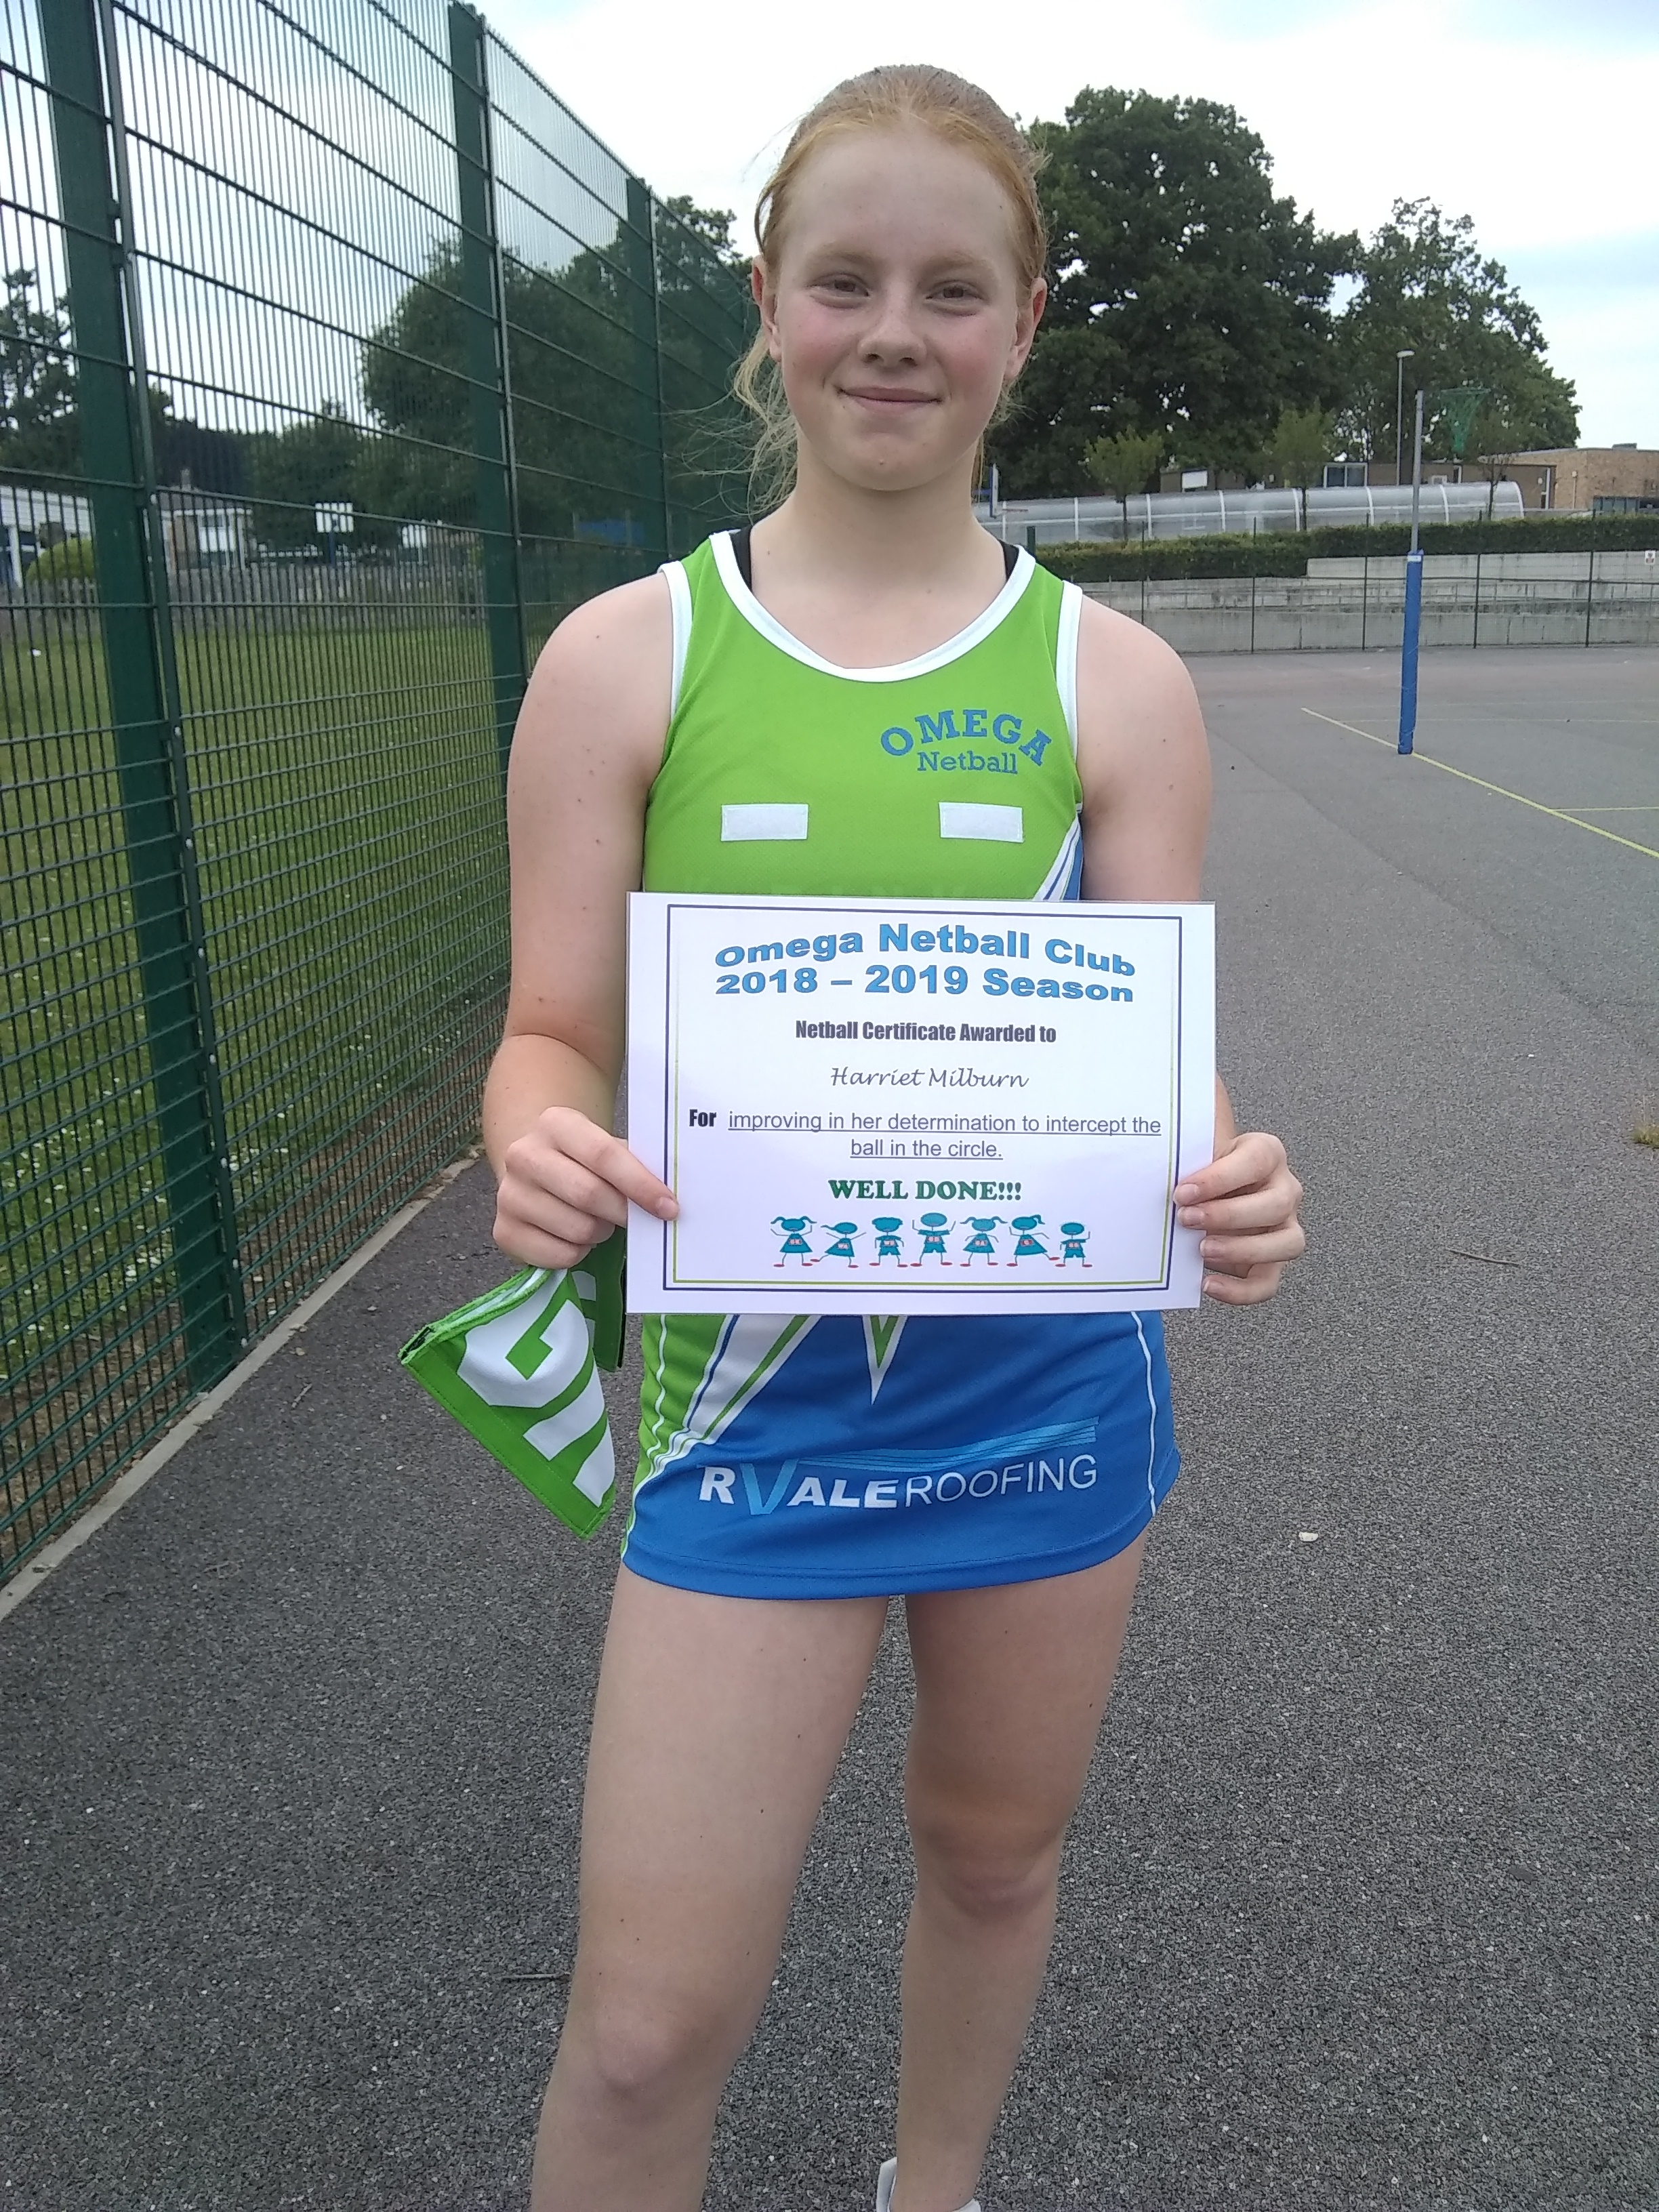 Harriet Milbourn - Acheivement award 2019